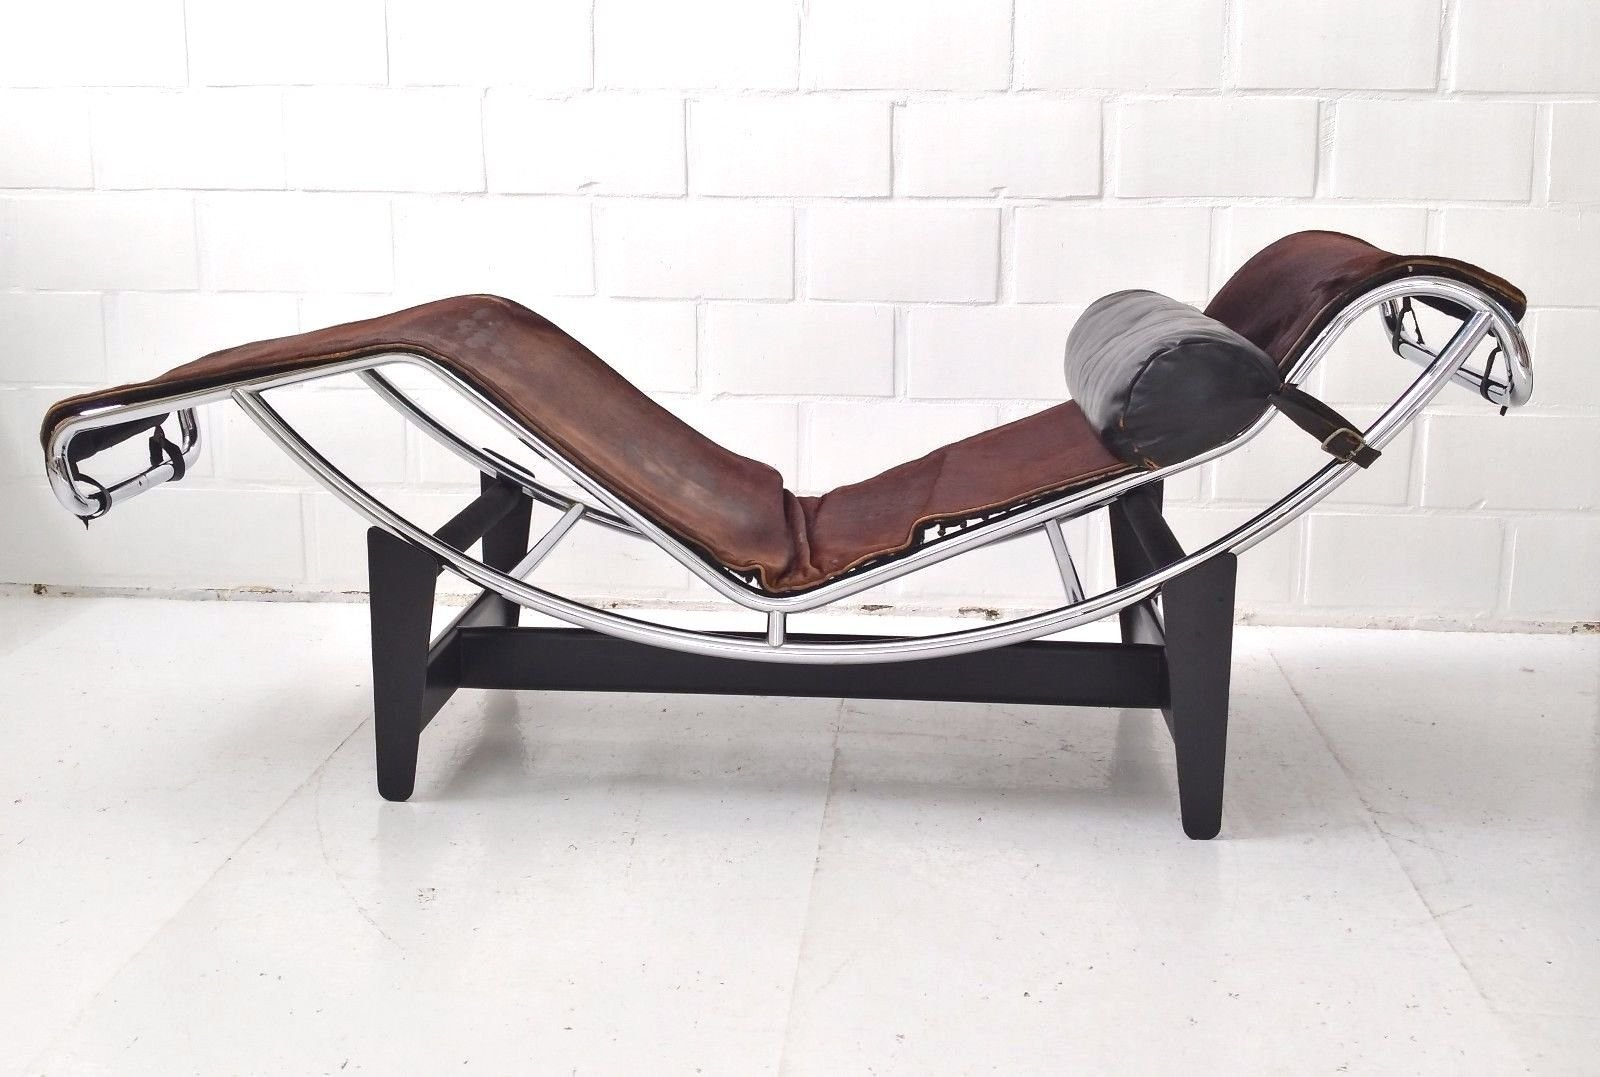 Conforama Sofa Lund Chaise Gallery Of Chaise With Chaise Amazing Savannah Chocolate